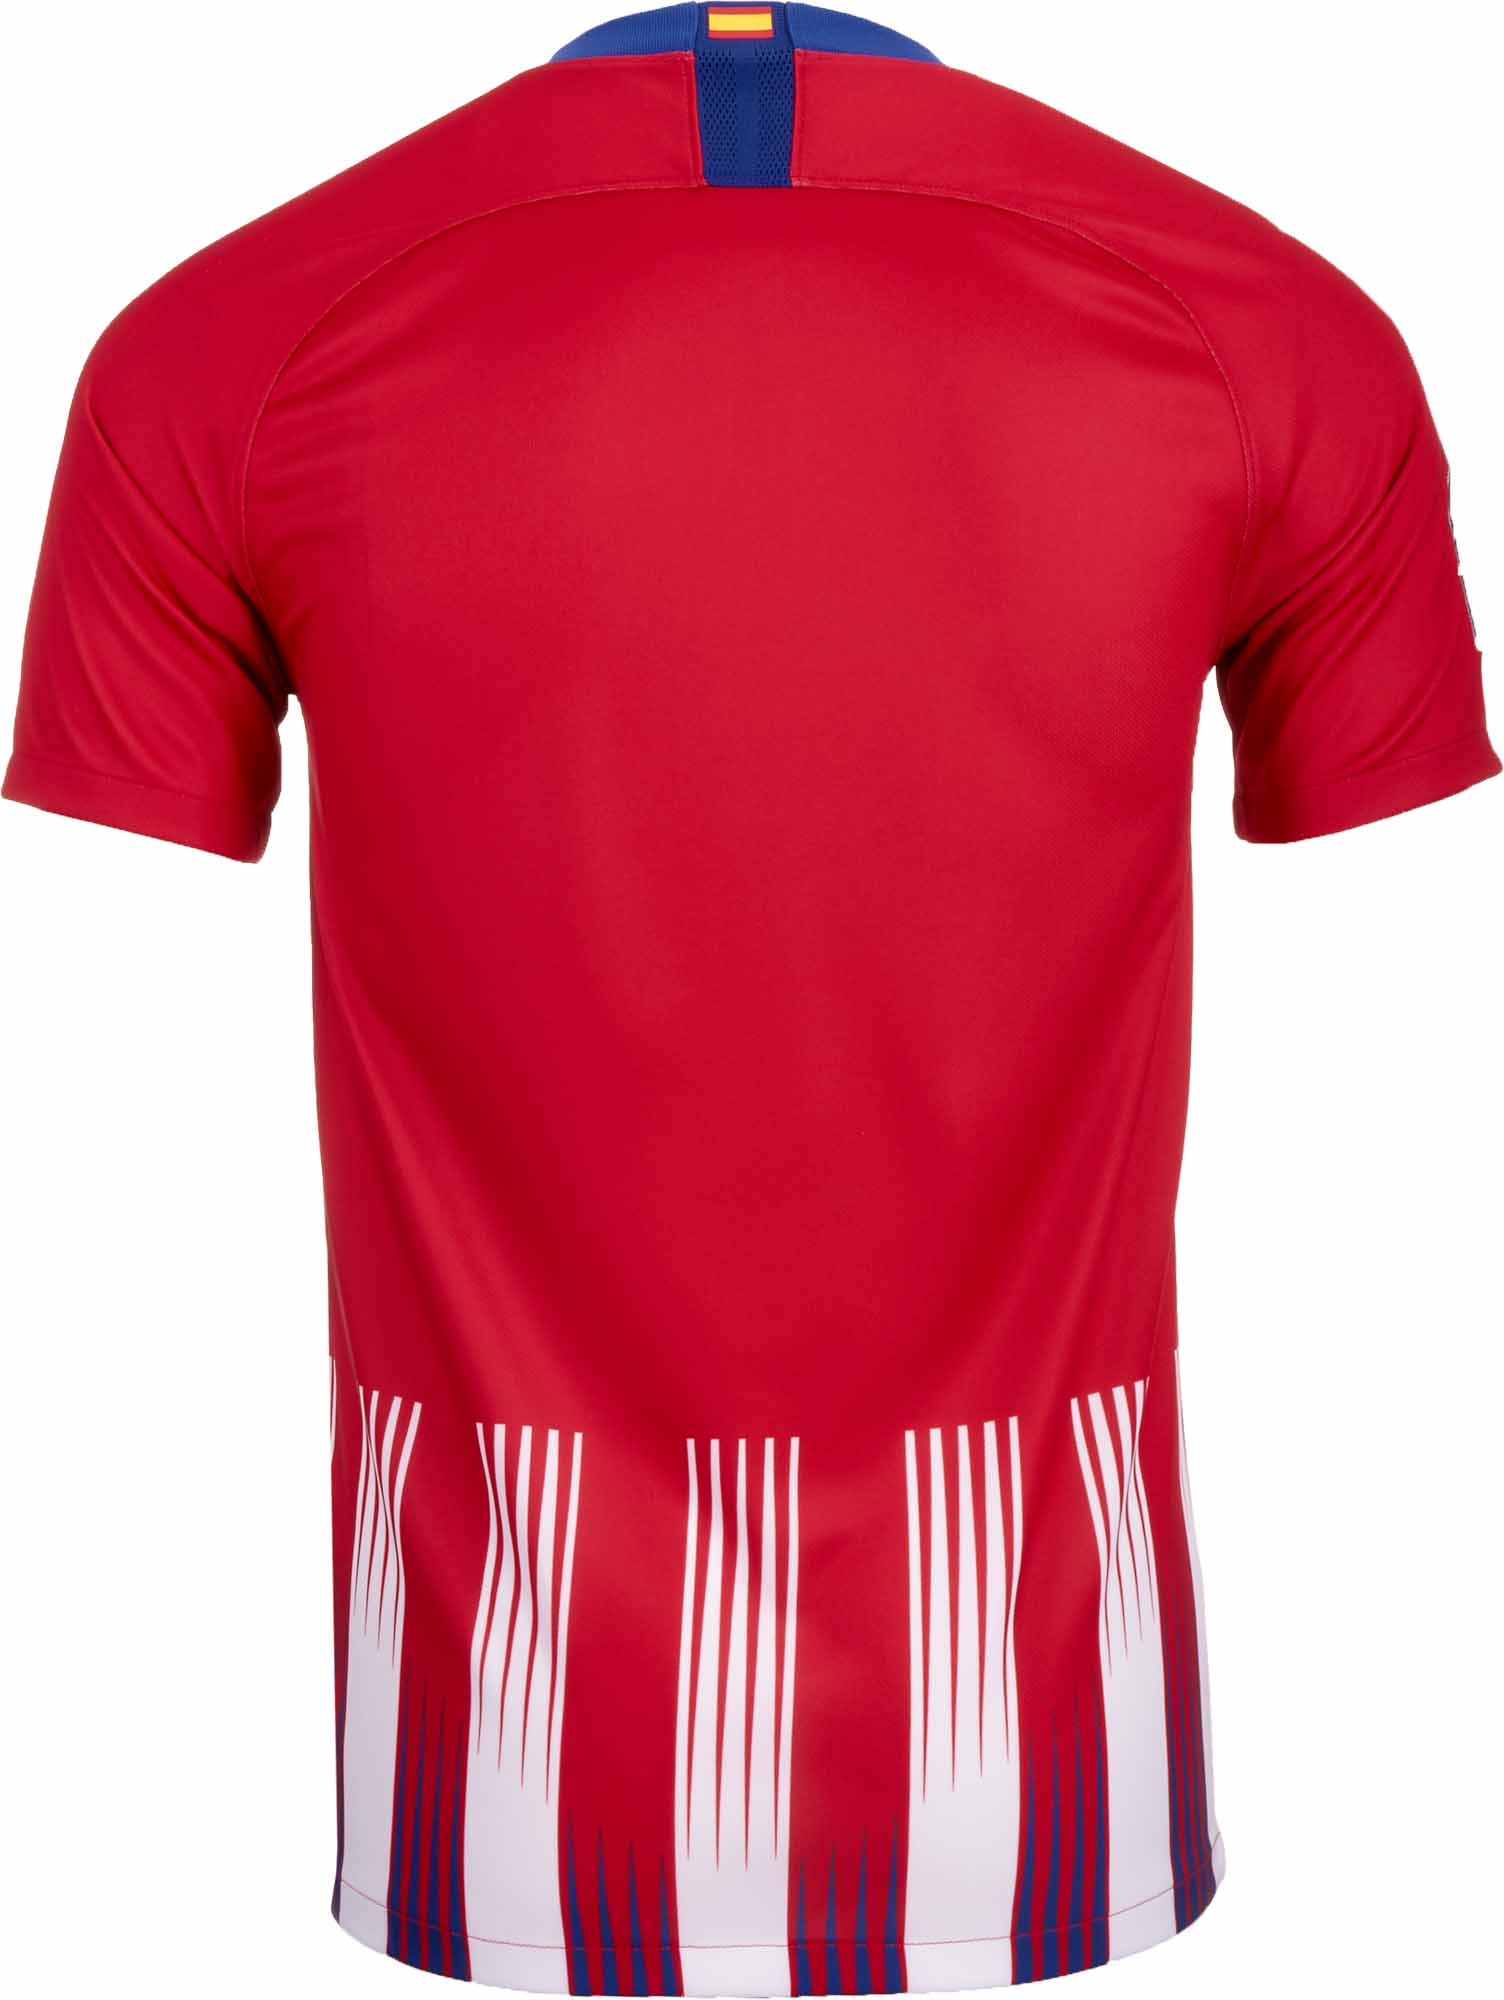 db776ff8a6227 Nike Atletico Madrid Home Jersey 2018-19 - Soccer Master